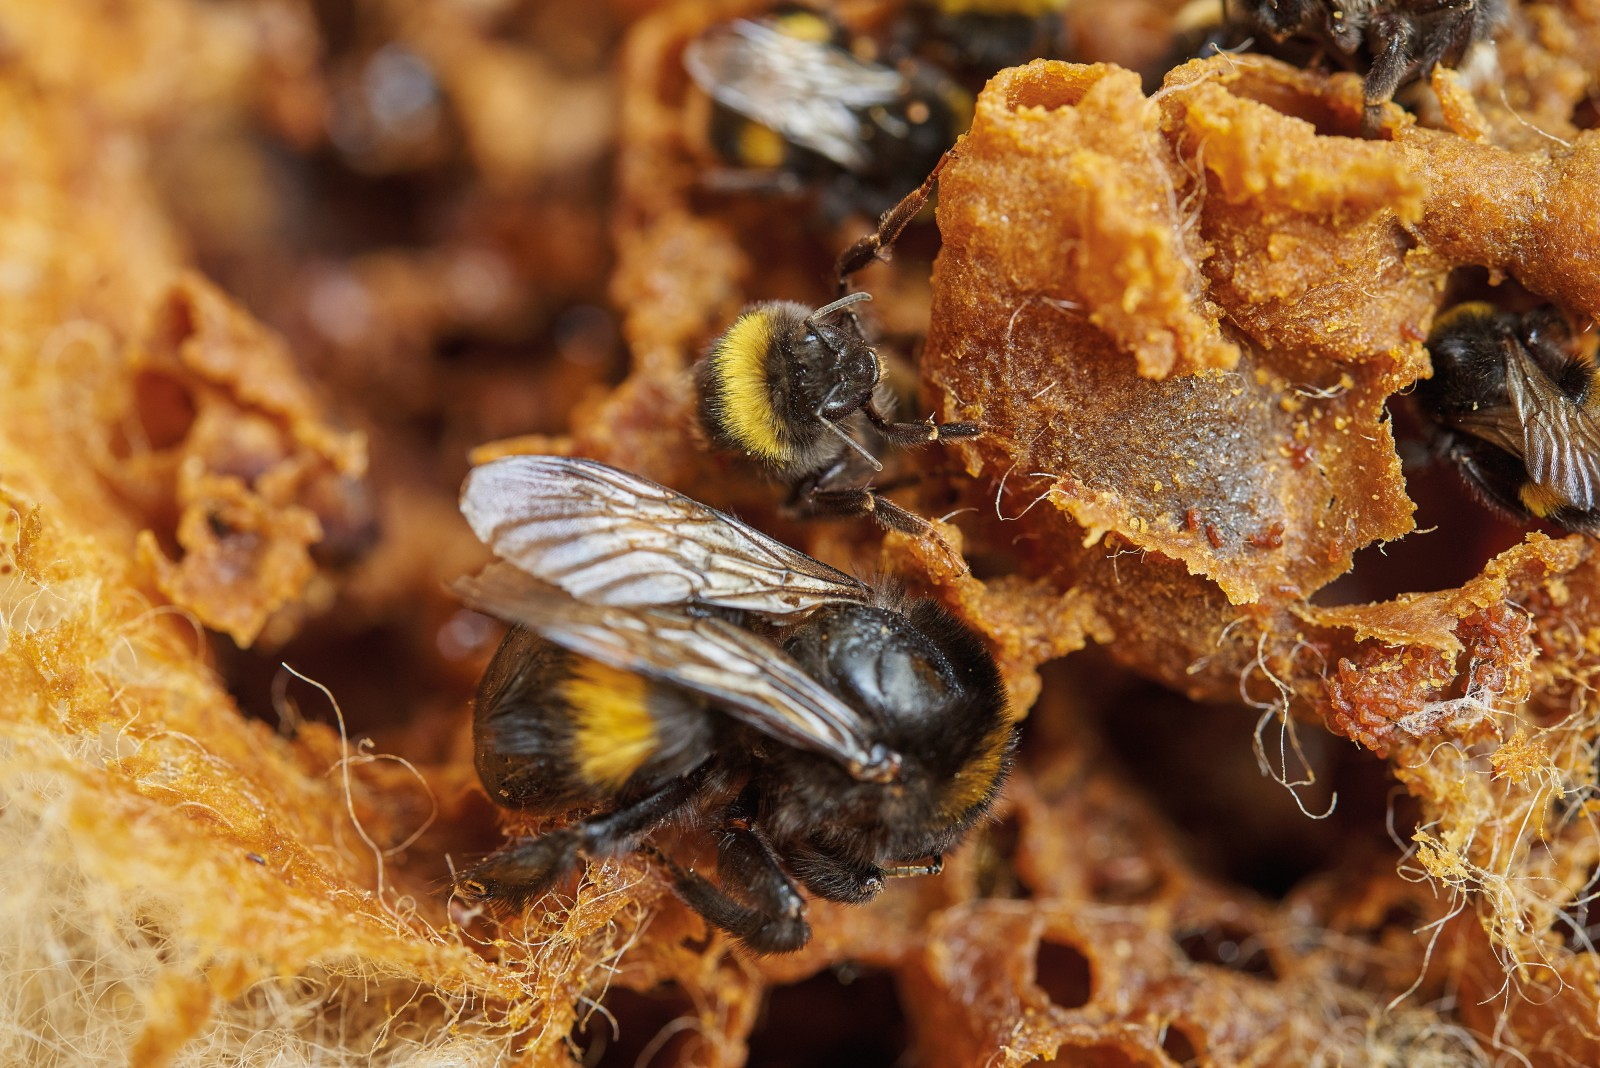 The queen bumblebee can be more than twice as large as a worker. An established bumblebee nest looks like a ramshackle waxen slum, housing as many as 300 bees. The nest cells, built to house larvae and then recycled as nectar pots, are piled on top of each other like a wobbly stack of igloos.